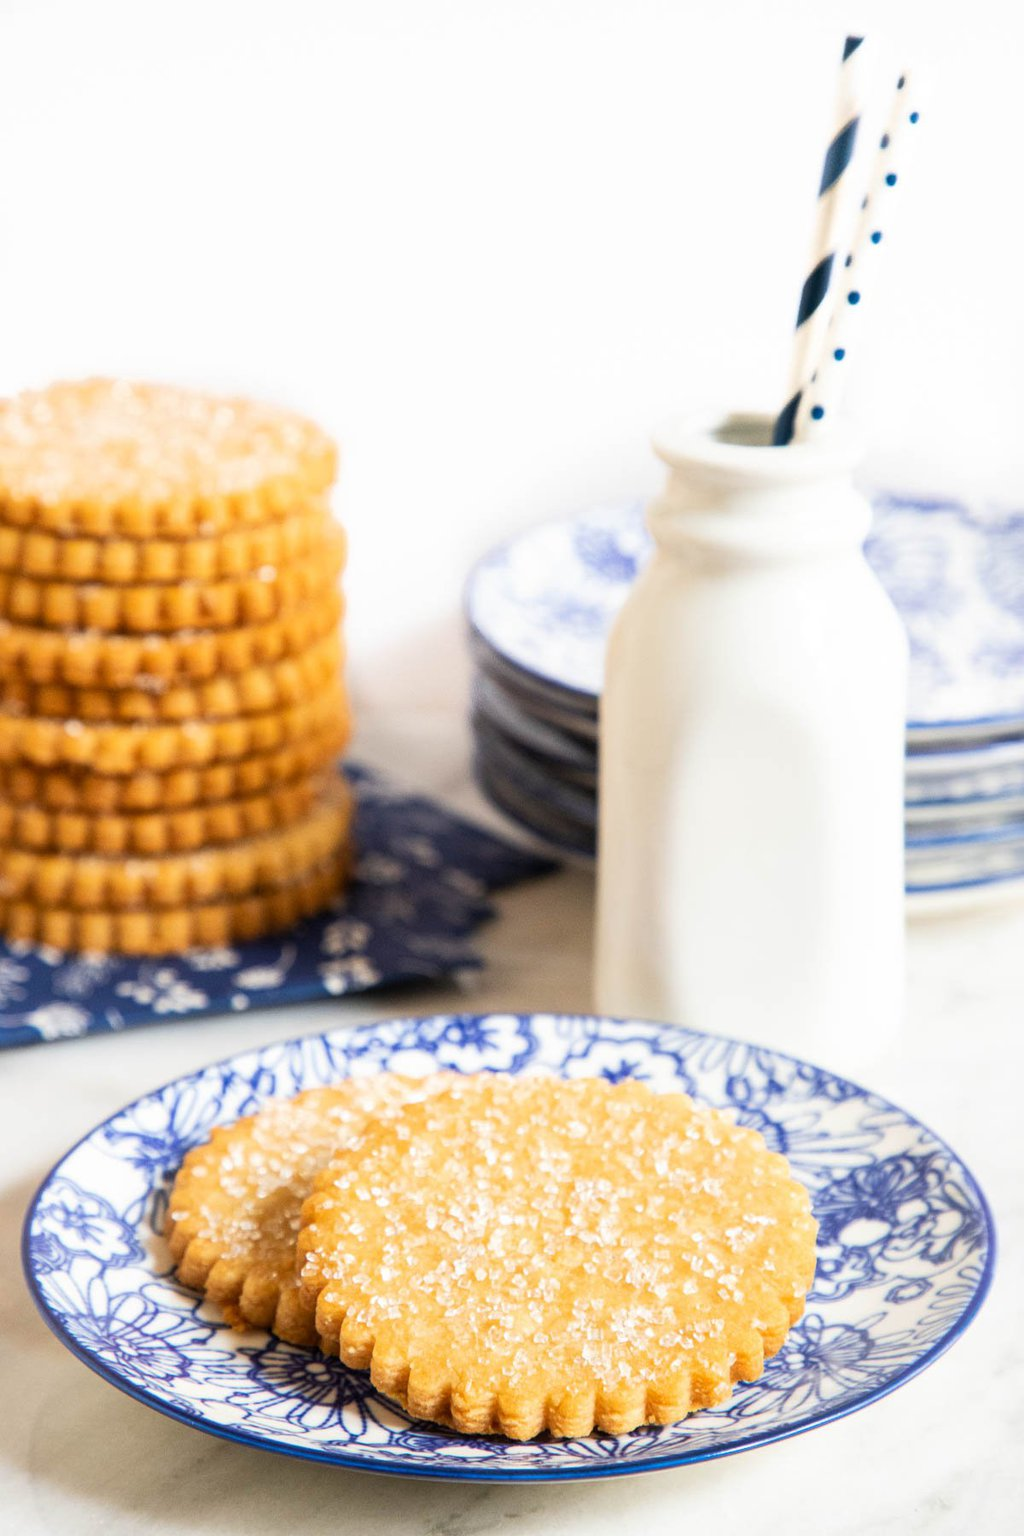 Vertical photo of a plate with two Brown Sugar Honey Shortbread Cookies and a stack of the cookies with milk in the background.